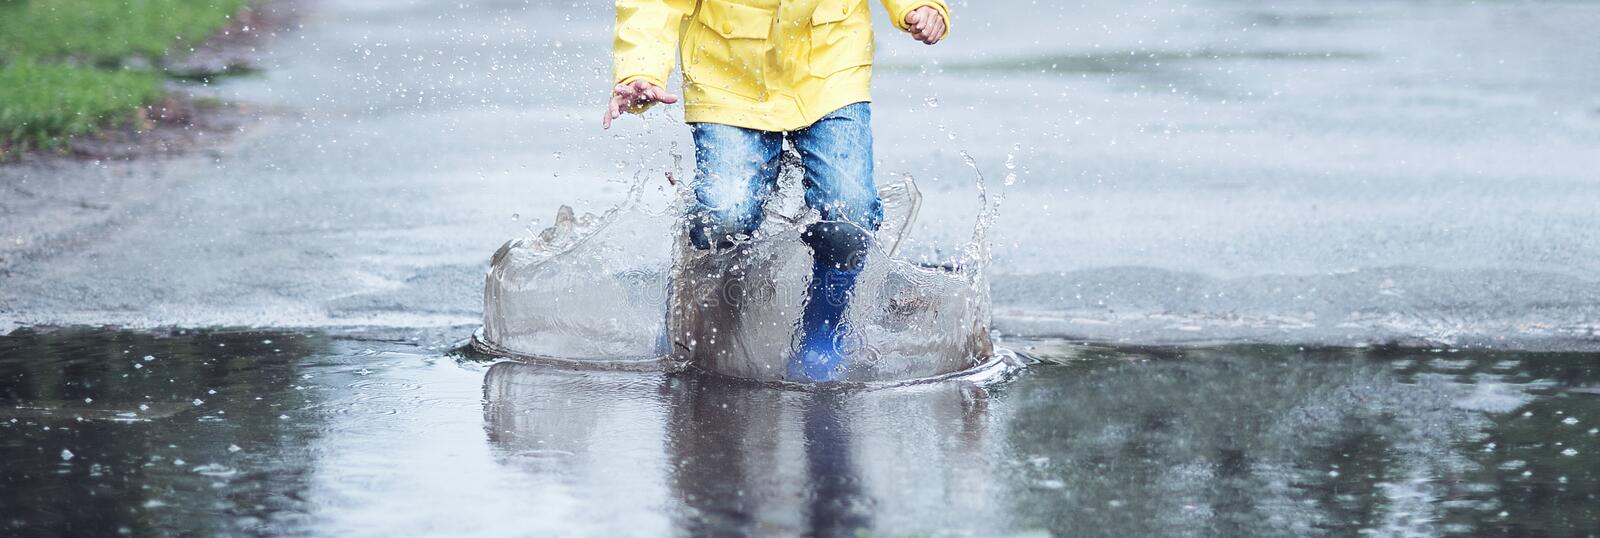 A wet child is jumping in a puddle. Fun on the street. Tempering in summer stock photo